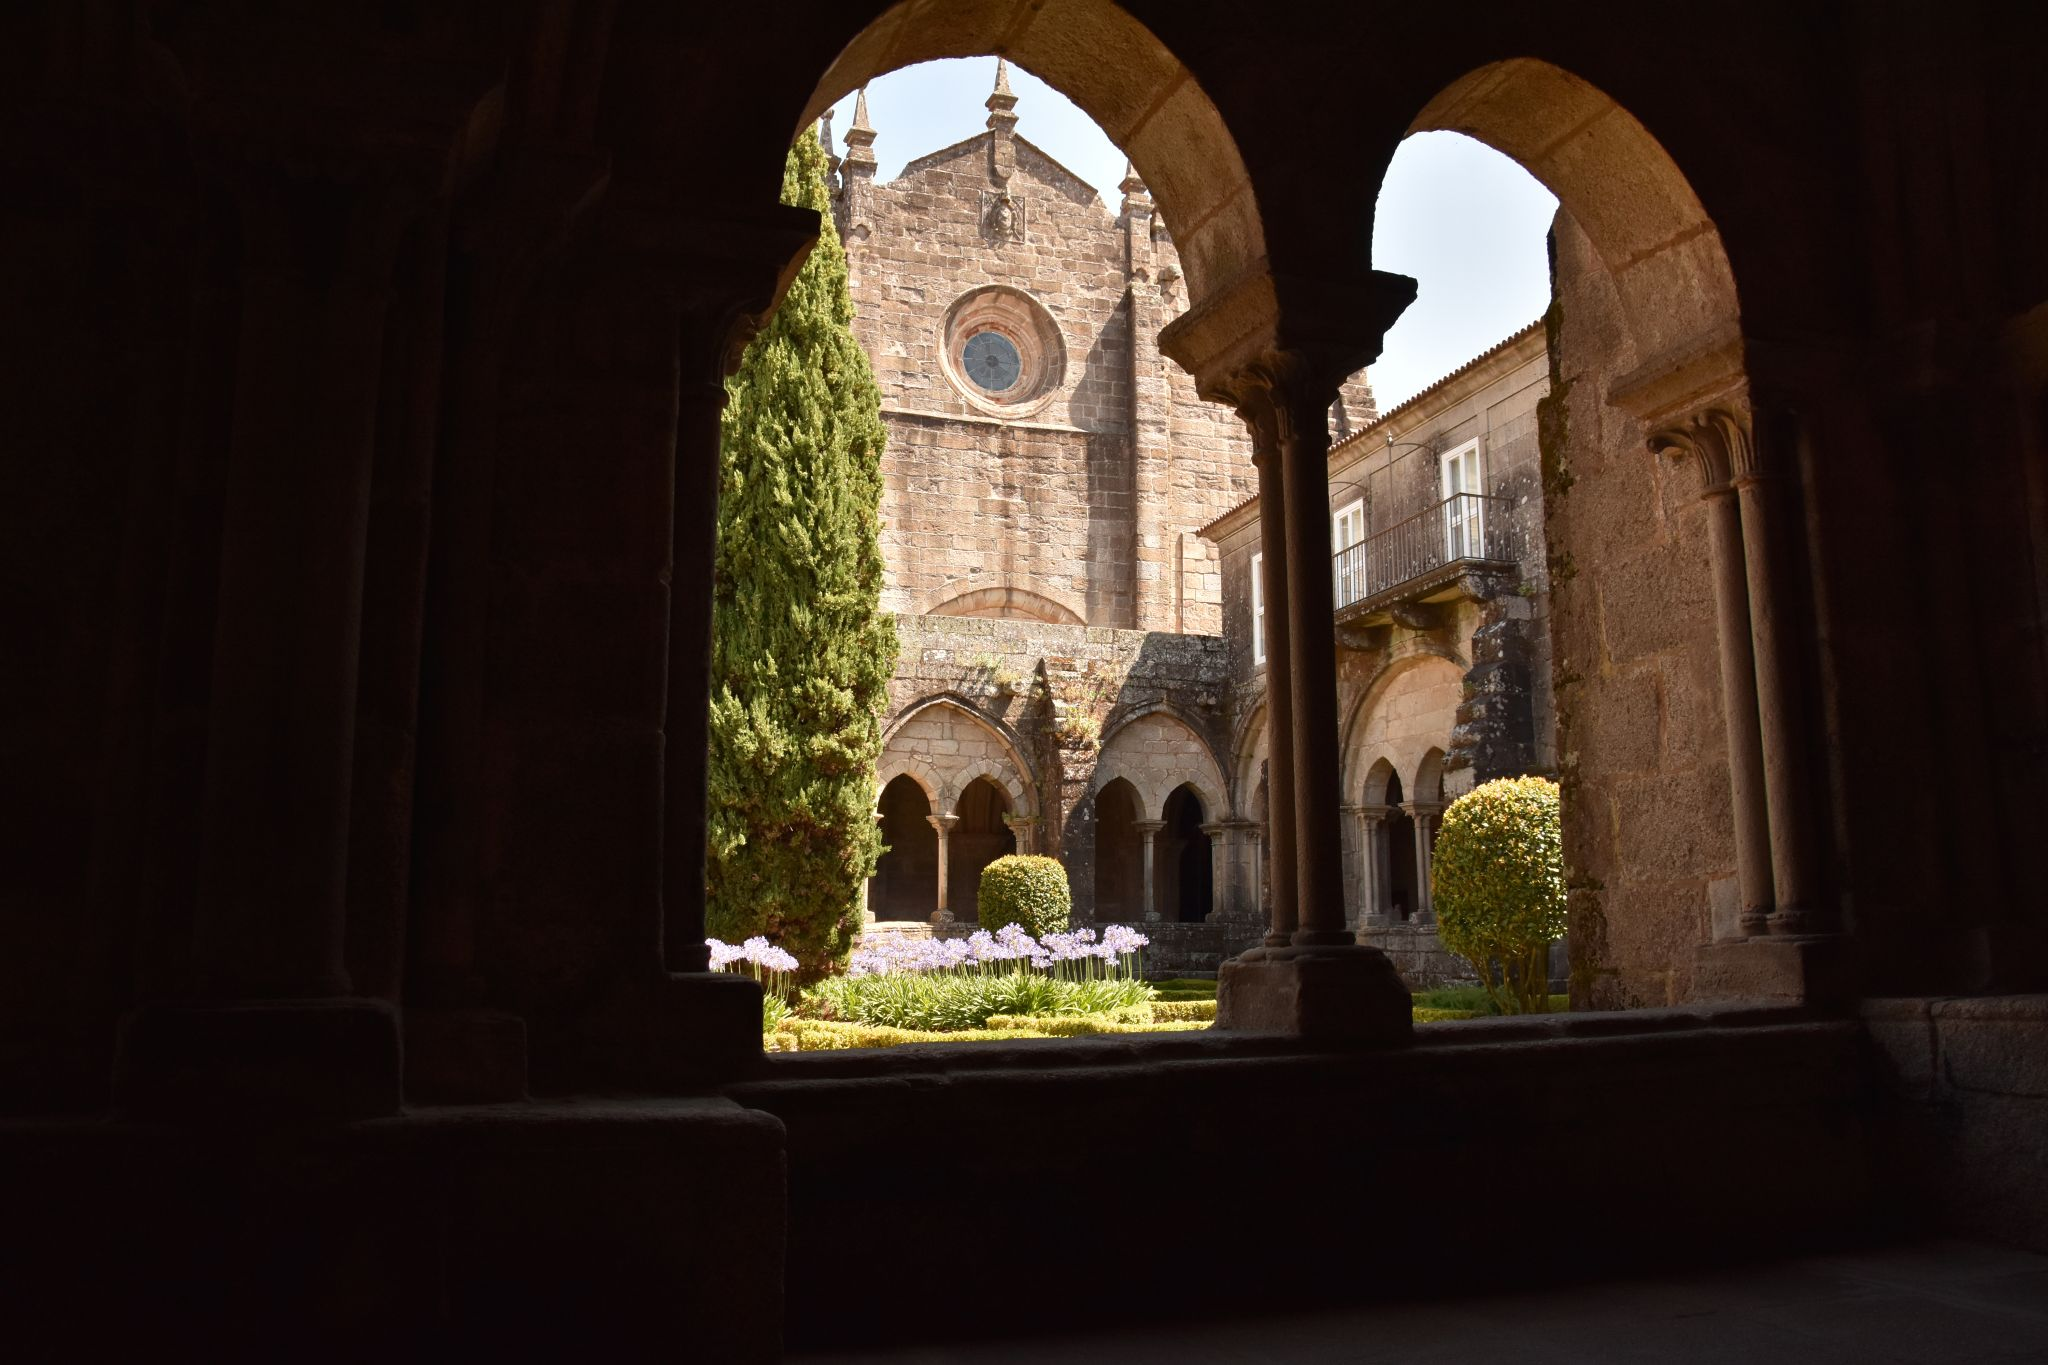 Cathedral cloister, Spain